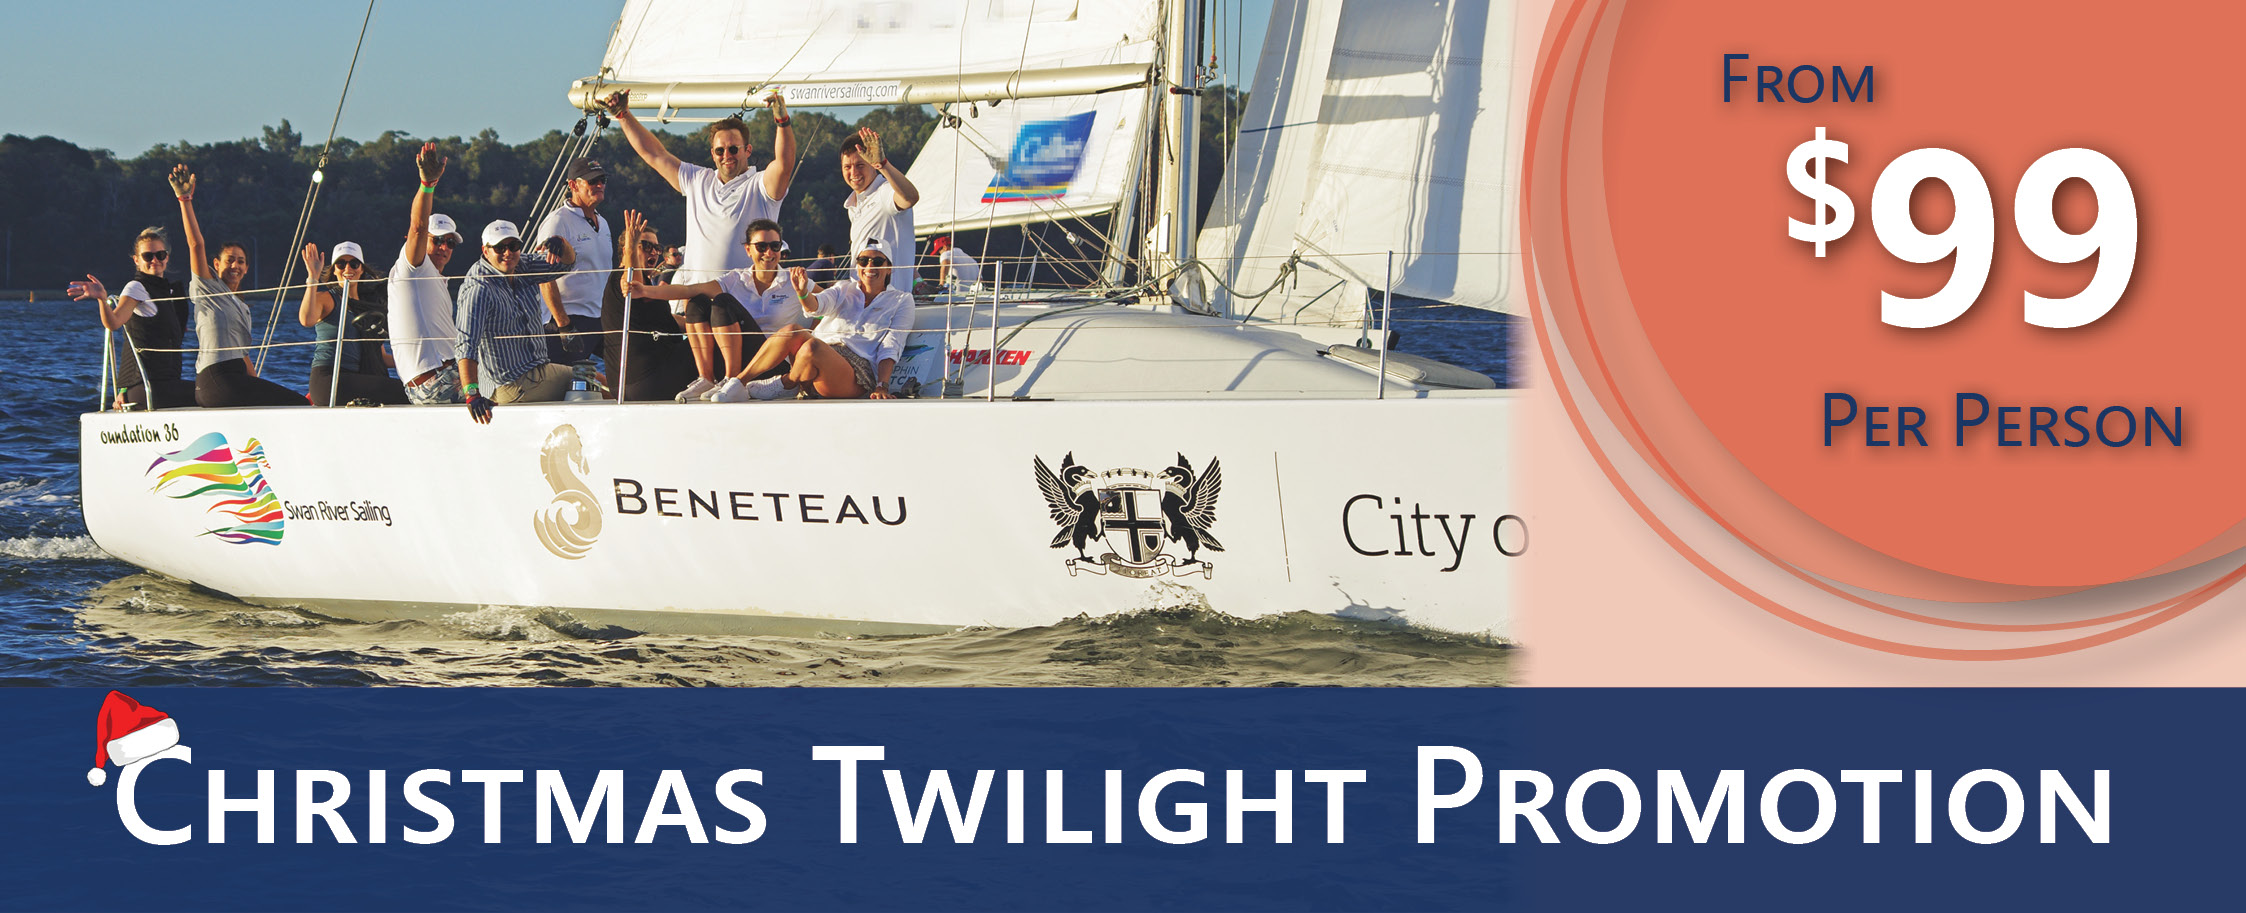 swan river sailing in perth christmas twilights at royal perth yacht club, the perfect office christmas party for small groups